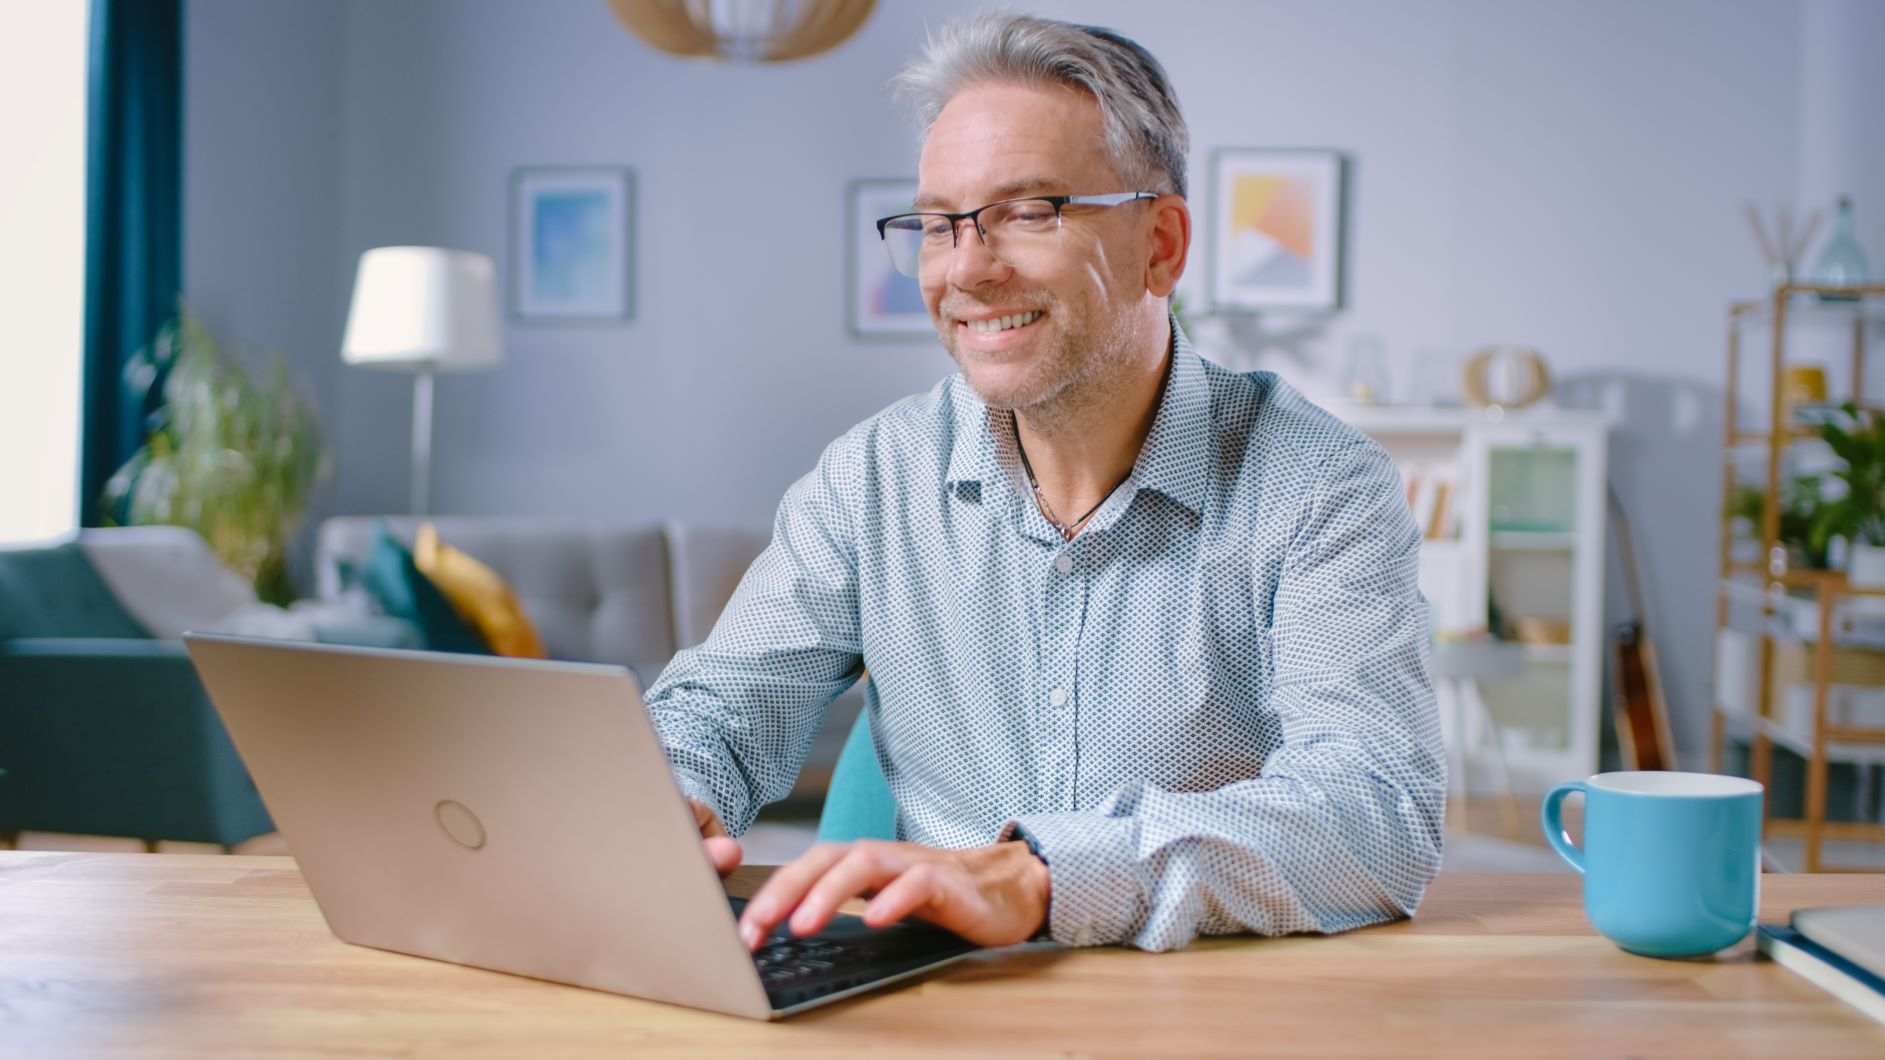 image of man at computer on remote call